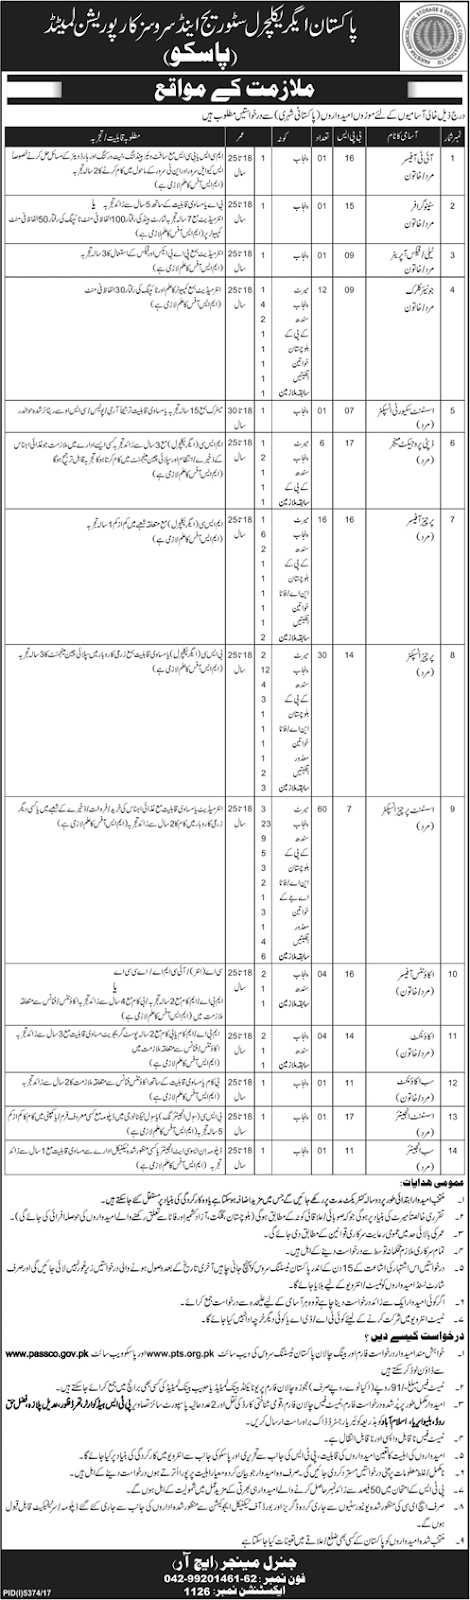 Jobs in Punjab , Jobs in Lahore , Jobs in Faisalabad, Punjab Jobs 2018 , DAE Jobs 2018 , Agriculture Jobs 2018